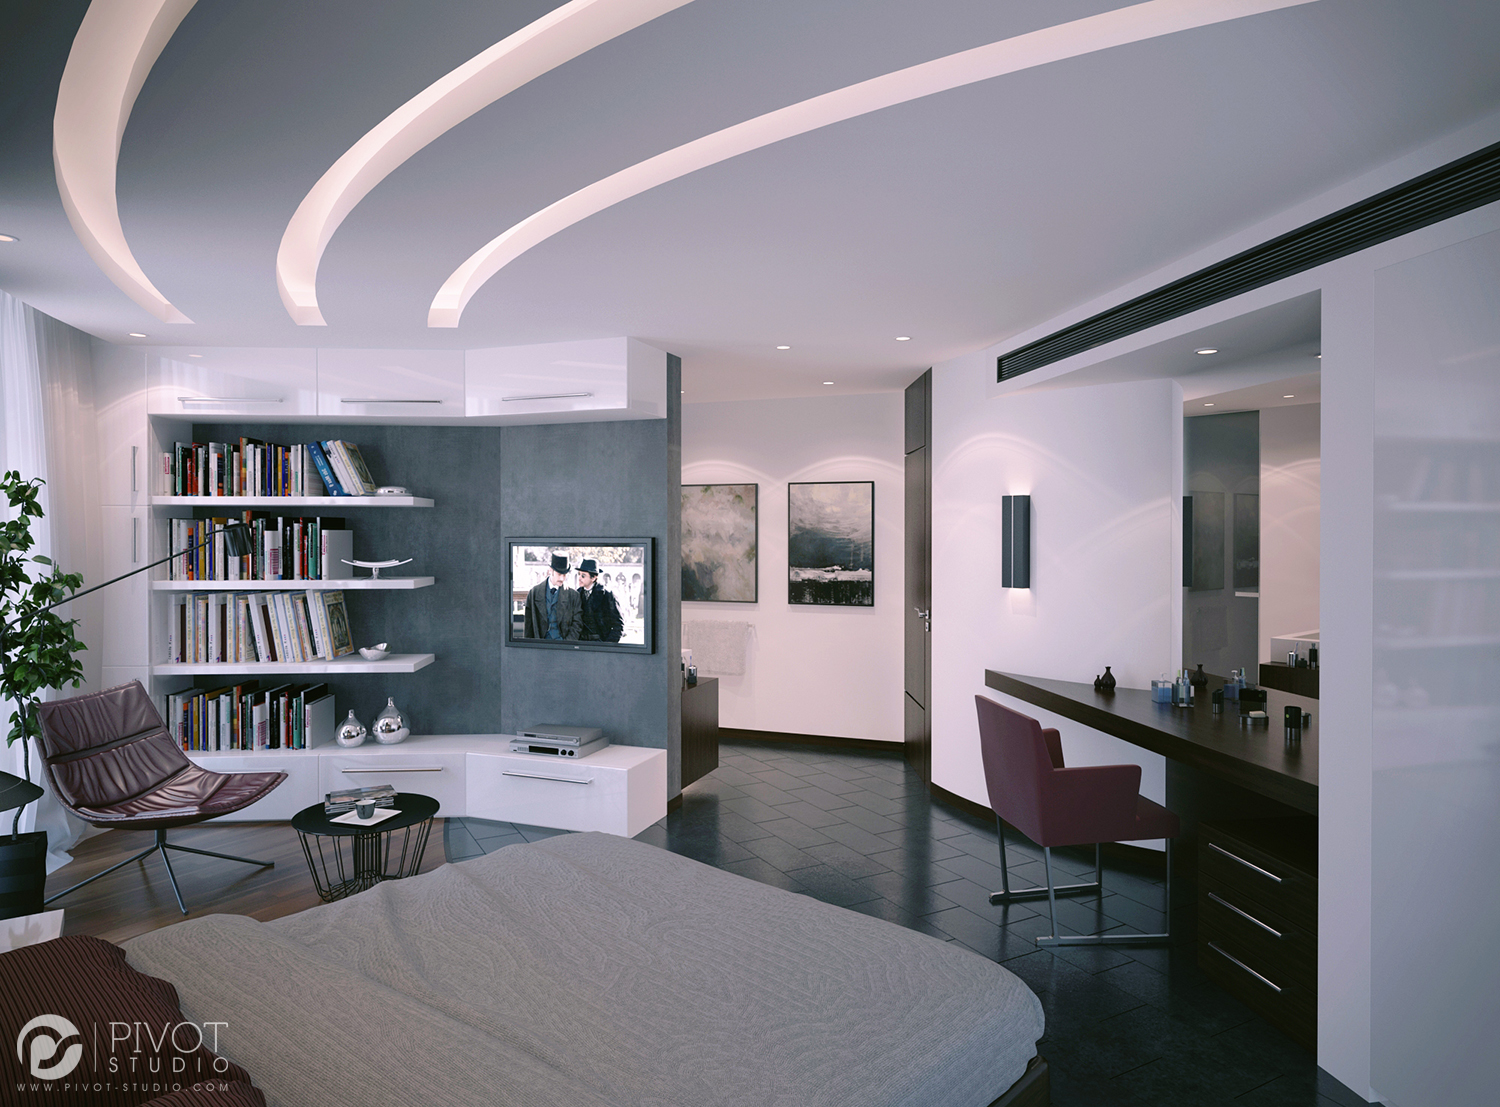 Recessed ceiling lights interior design ideas like architecture interior design follow us mozeypictures Image collections